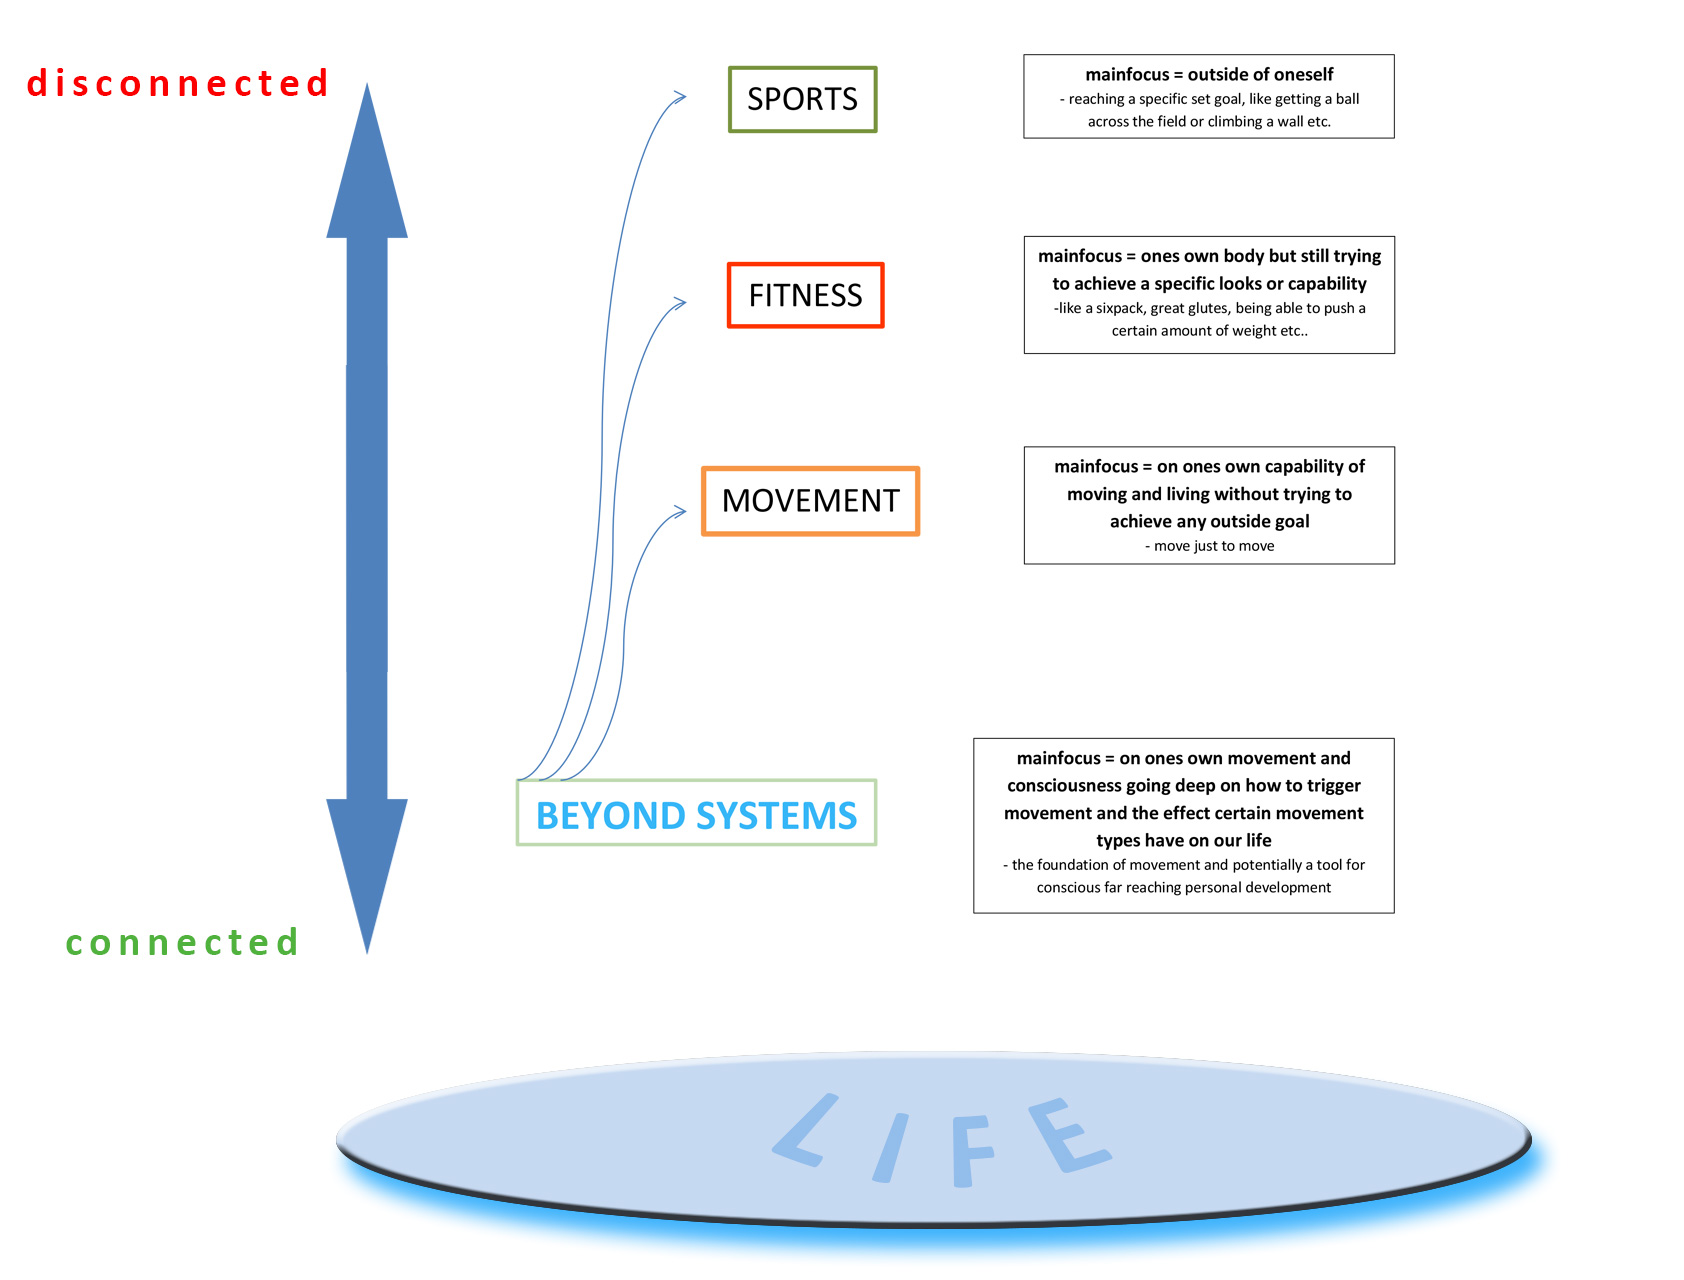 """In comparison to conscious """"movement"""", simply following the achievement of an external goal like in sports has little to do with our our innermost self, hence """"disconnected"""" and """"connected""""."""